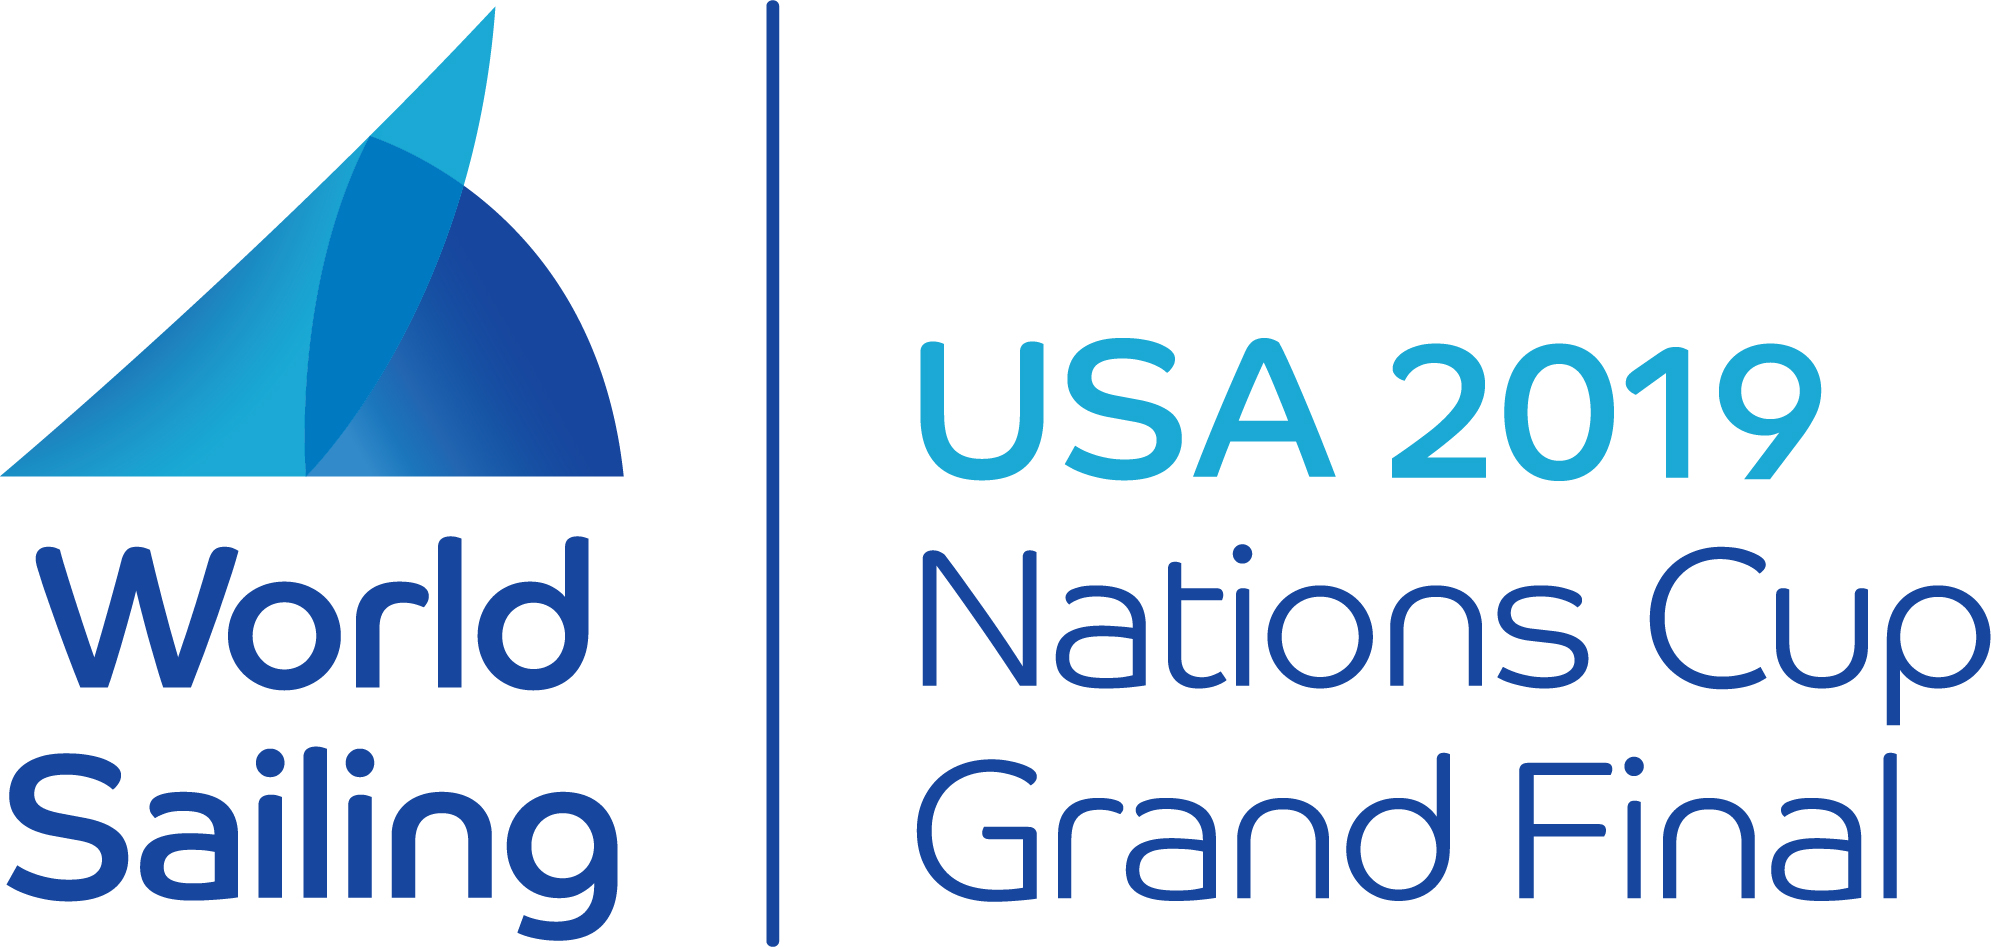 2019 World Sailing Nations Cup Grand Final - San Francisco, USA logo